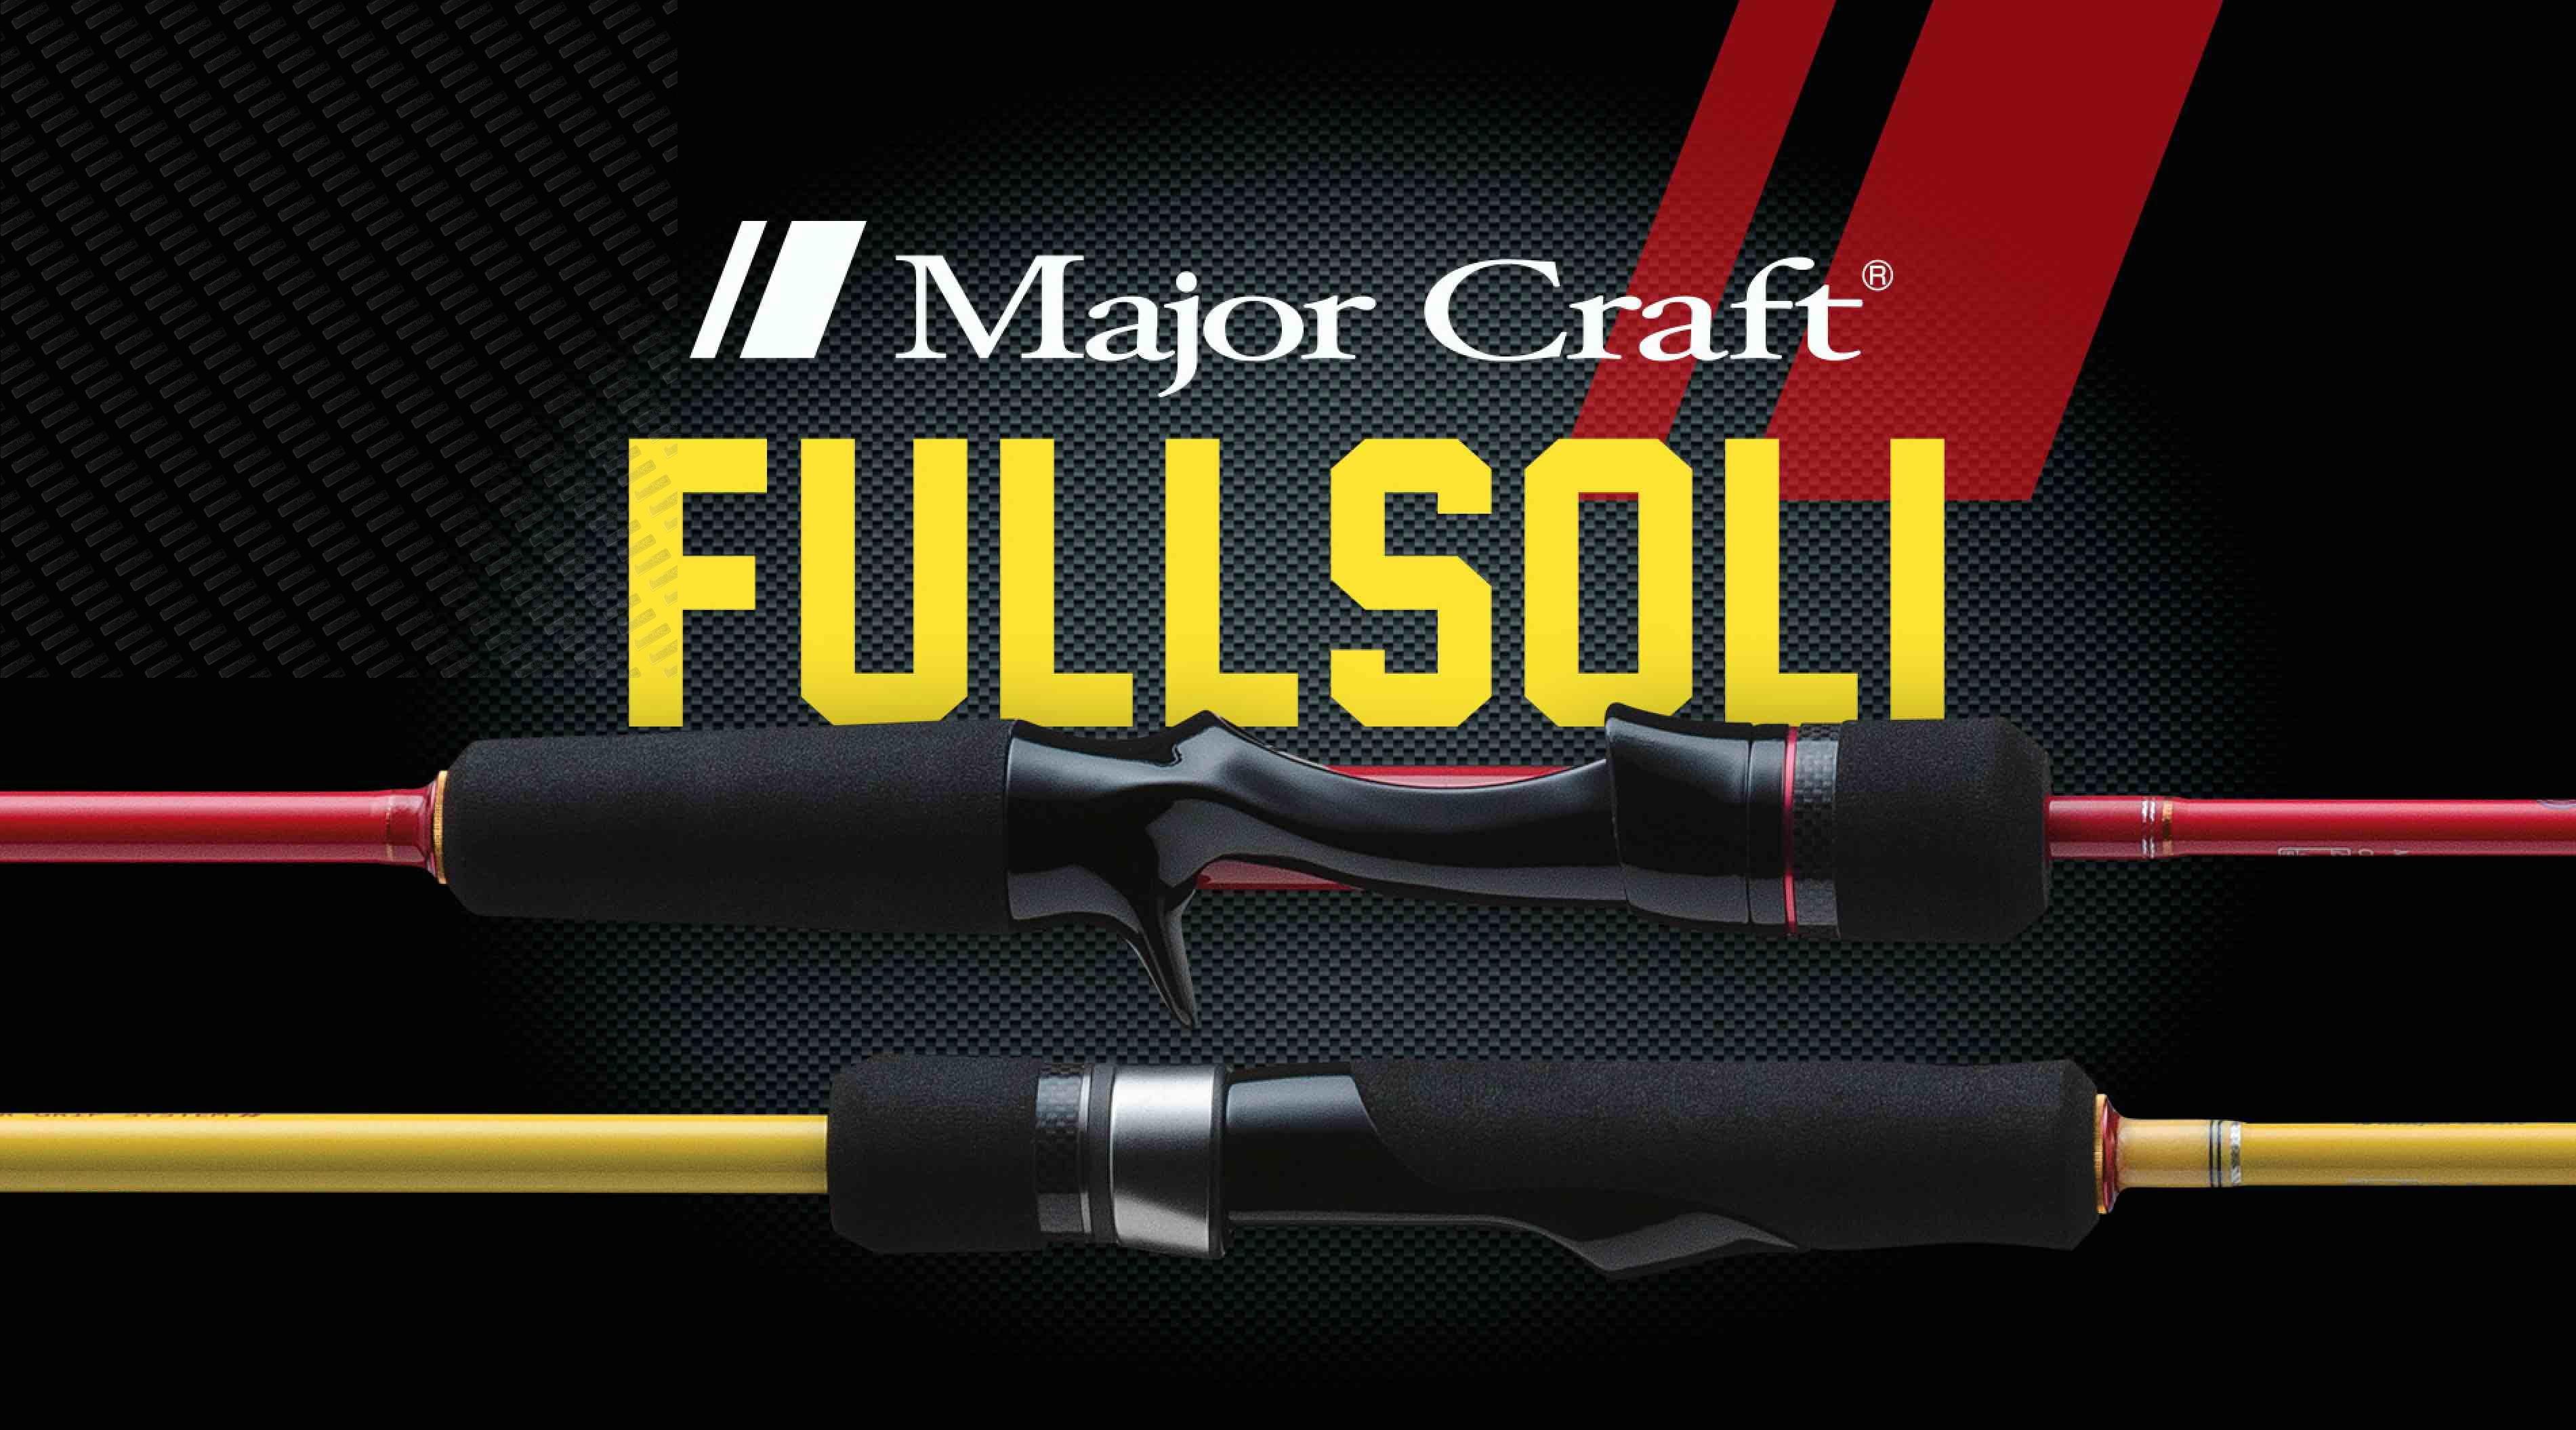 MAJOR CRAFT FullSoli